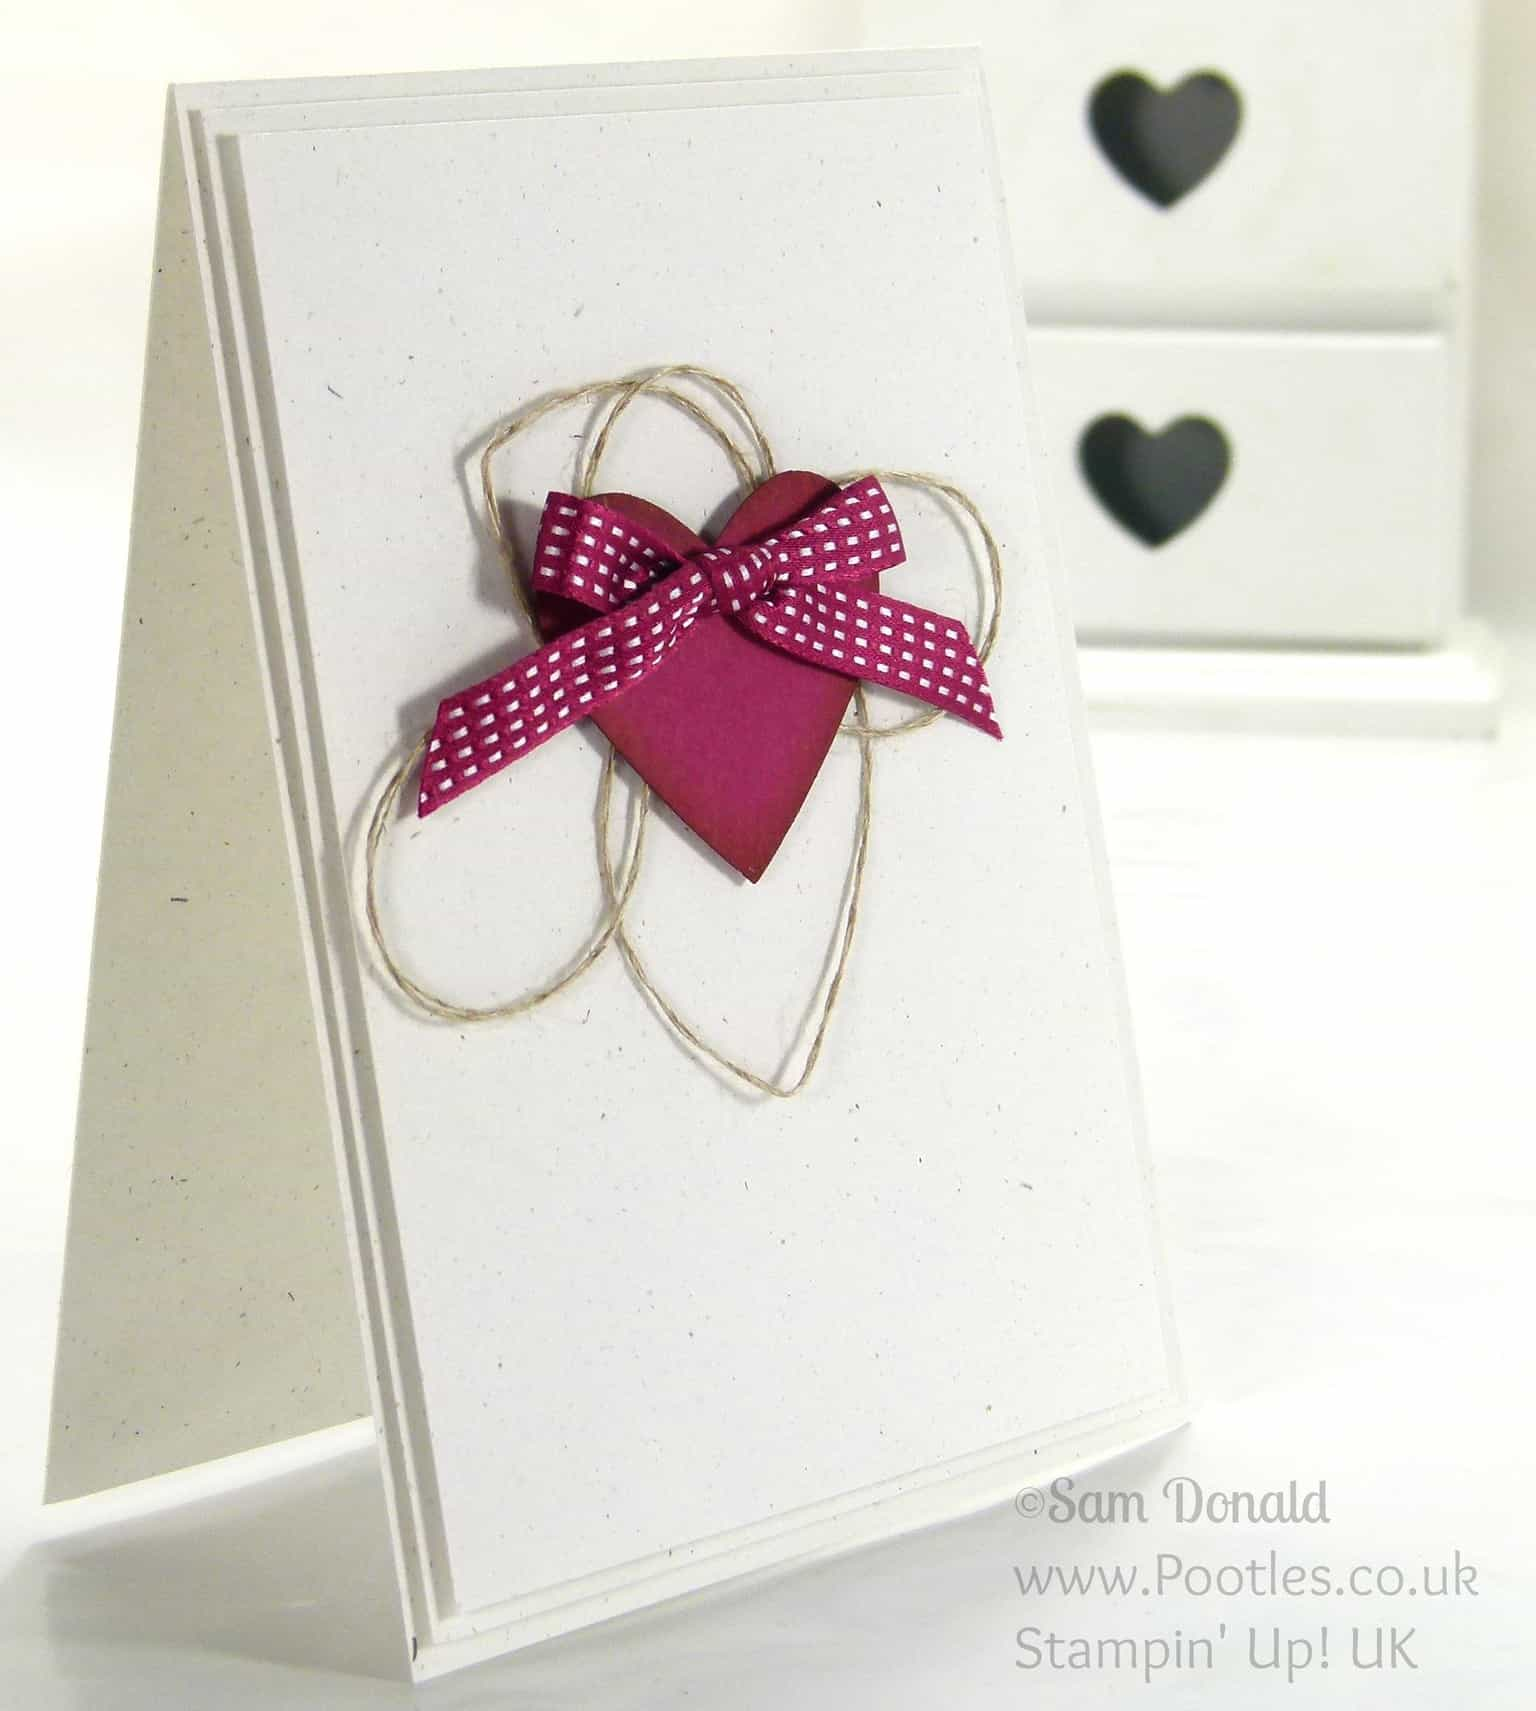 Stampin' Up! UK Independent Demonstrator Pootles. A Simple But Full Heart